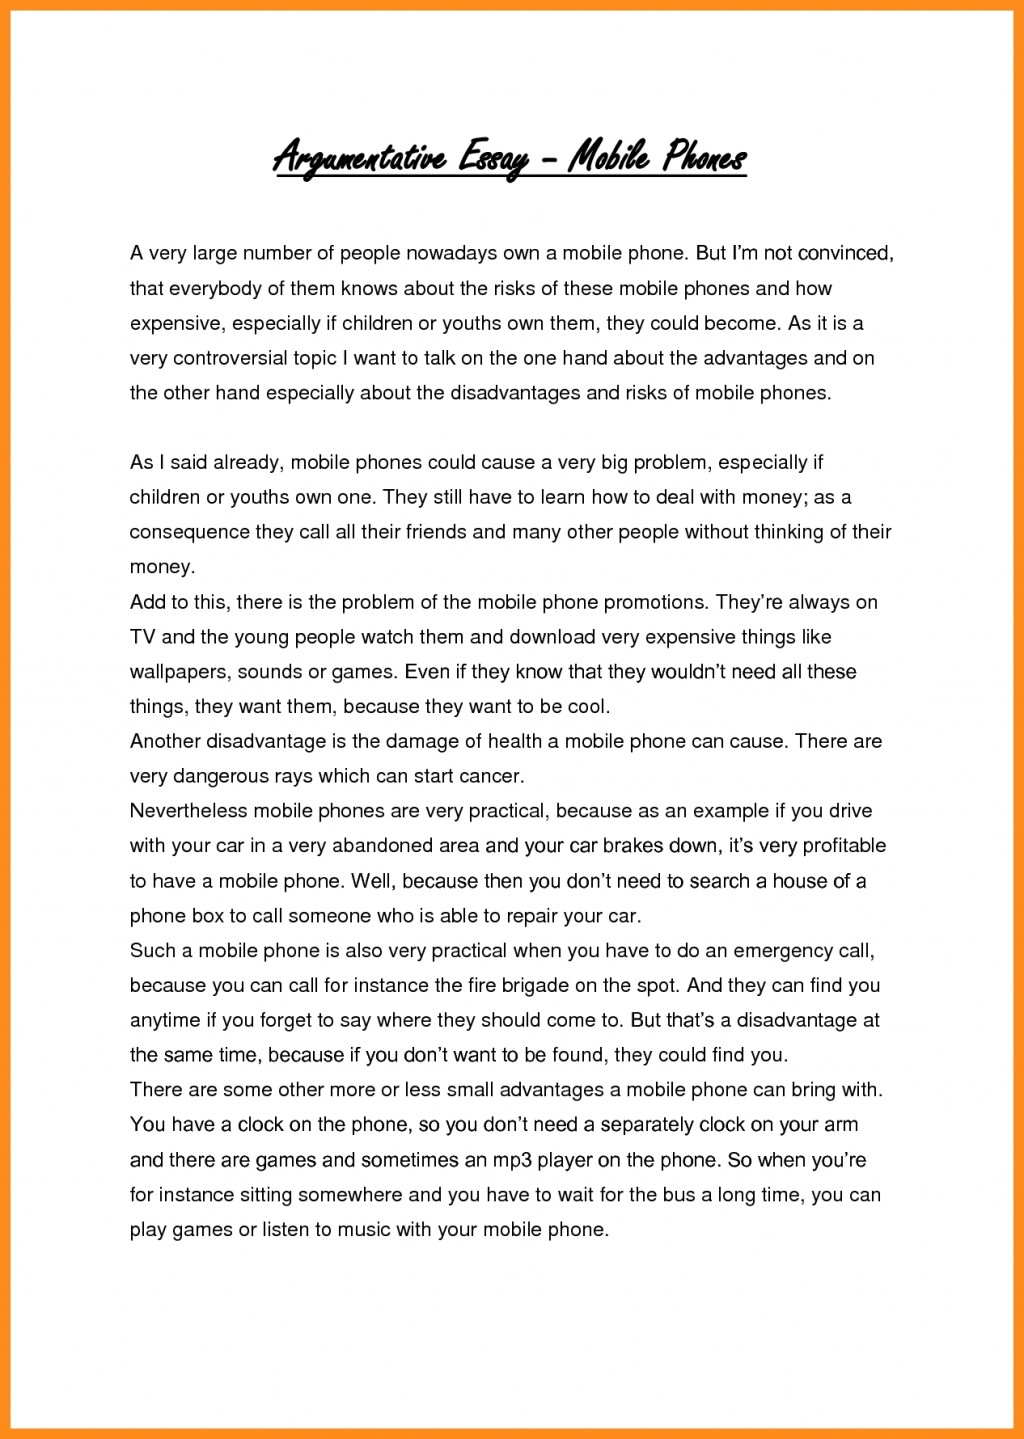 024 Examples Of Persuasive Essays Essay Example For Kids Printables Corner Template Highchoolamples Gre With Regard Outlineample Pdfhort Highschool Excellent 5th Grade Written By Graders Argumentative-persuasive Topics Large